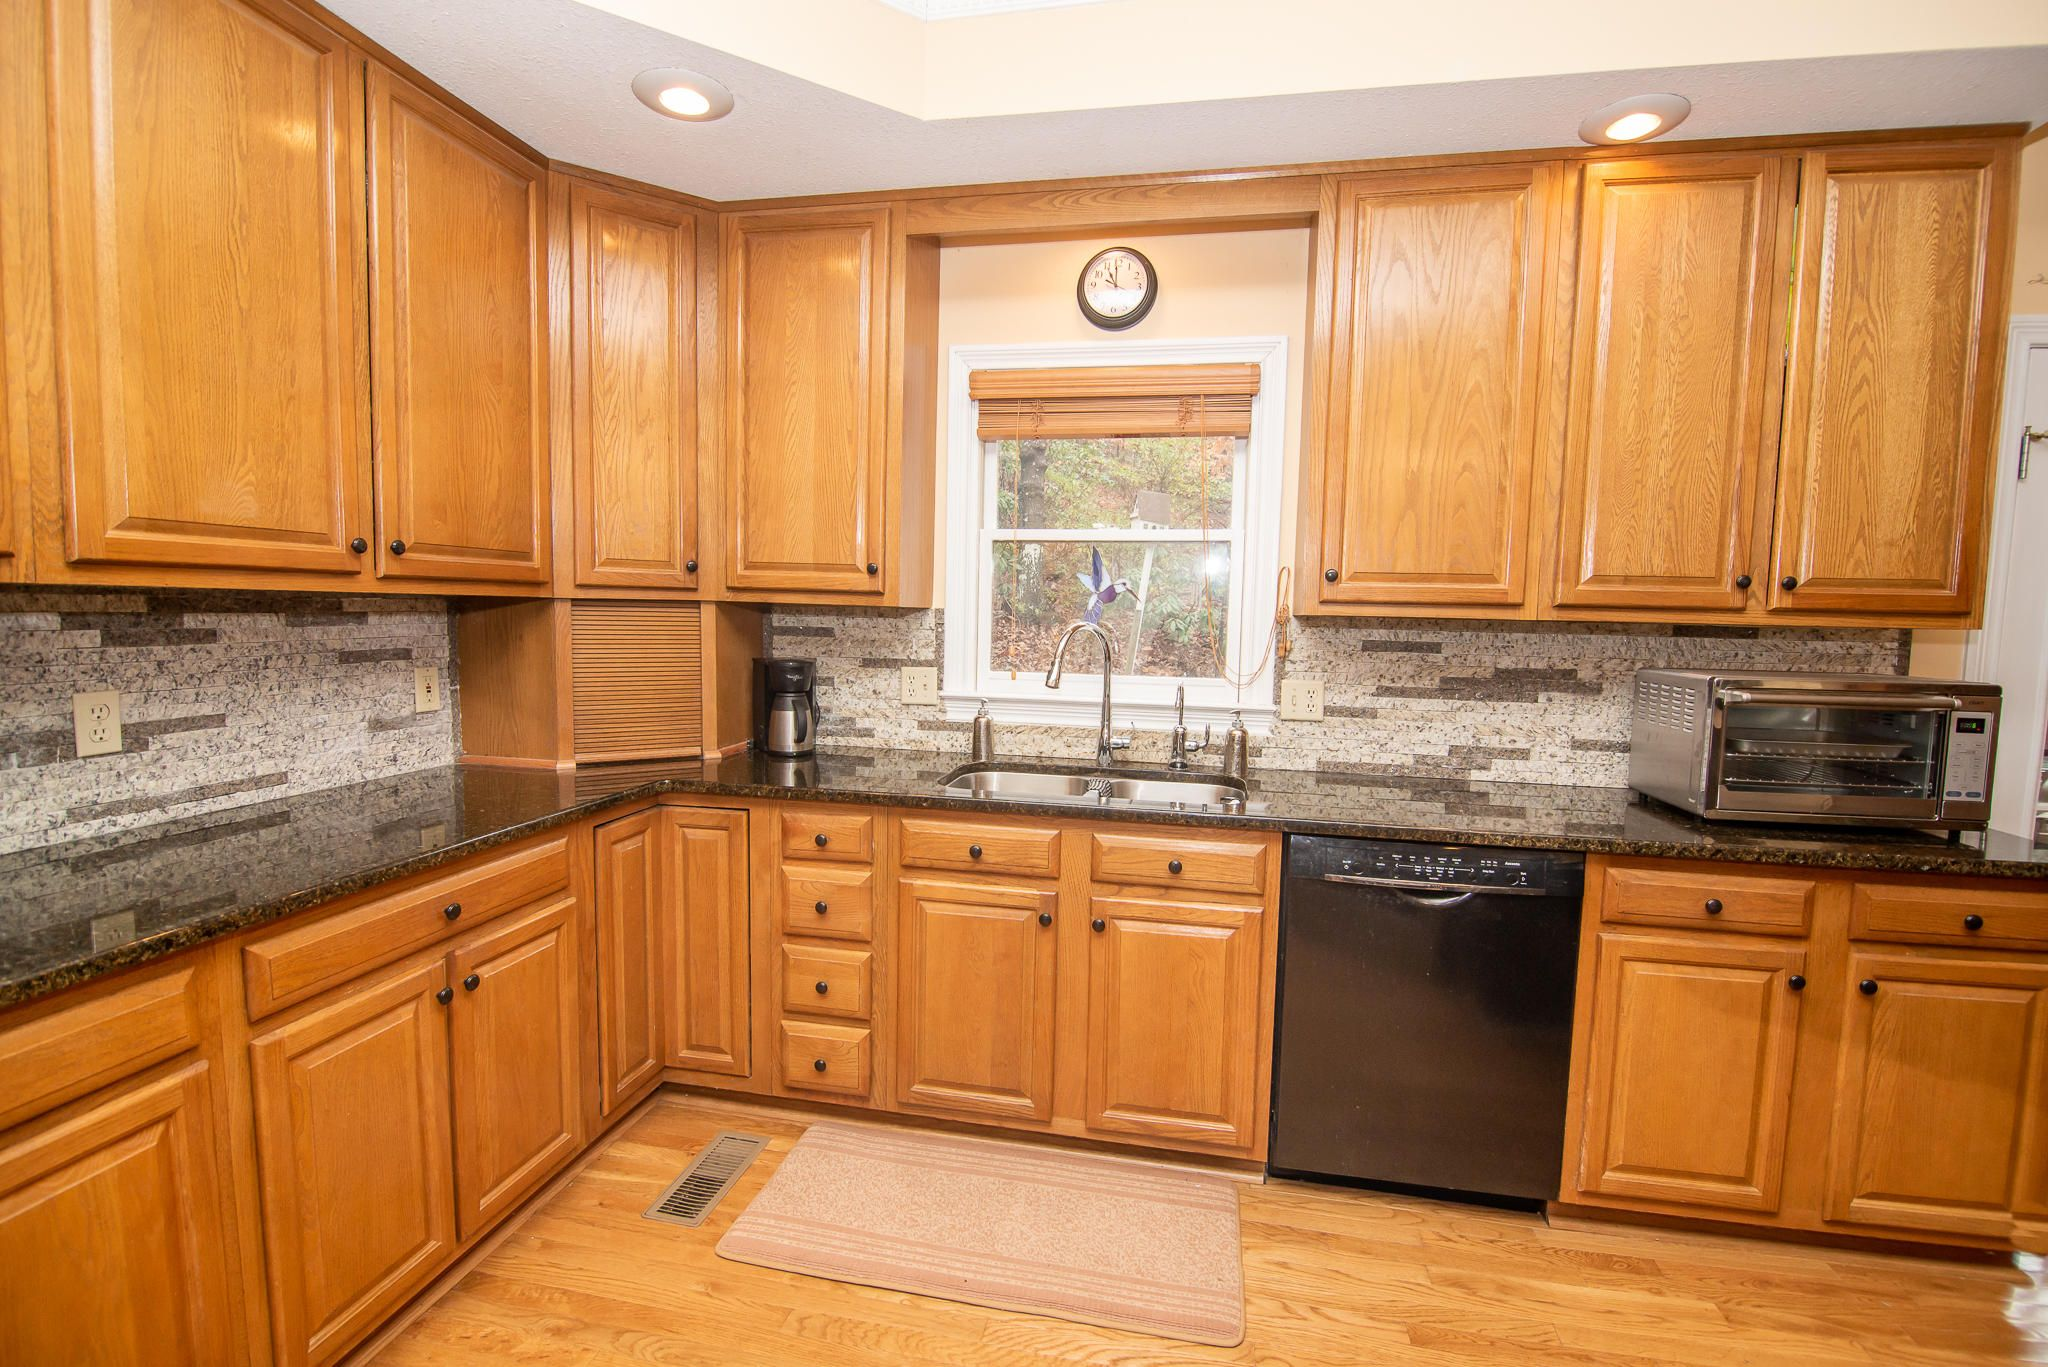 Lively cabinetry